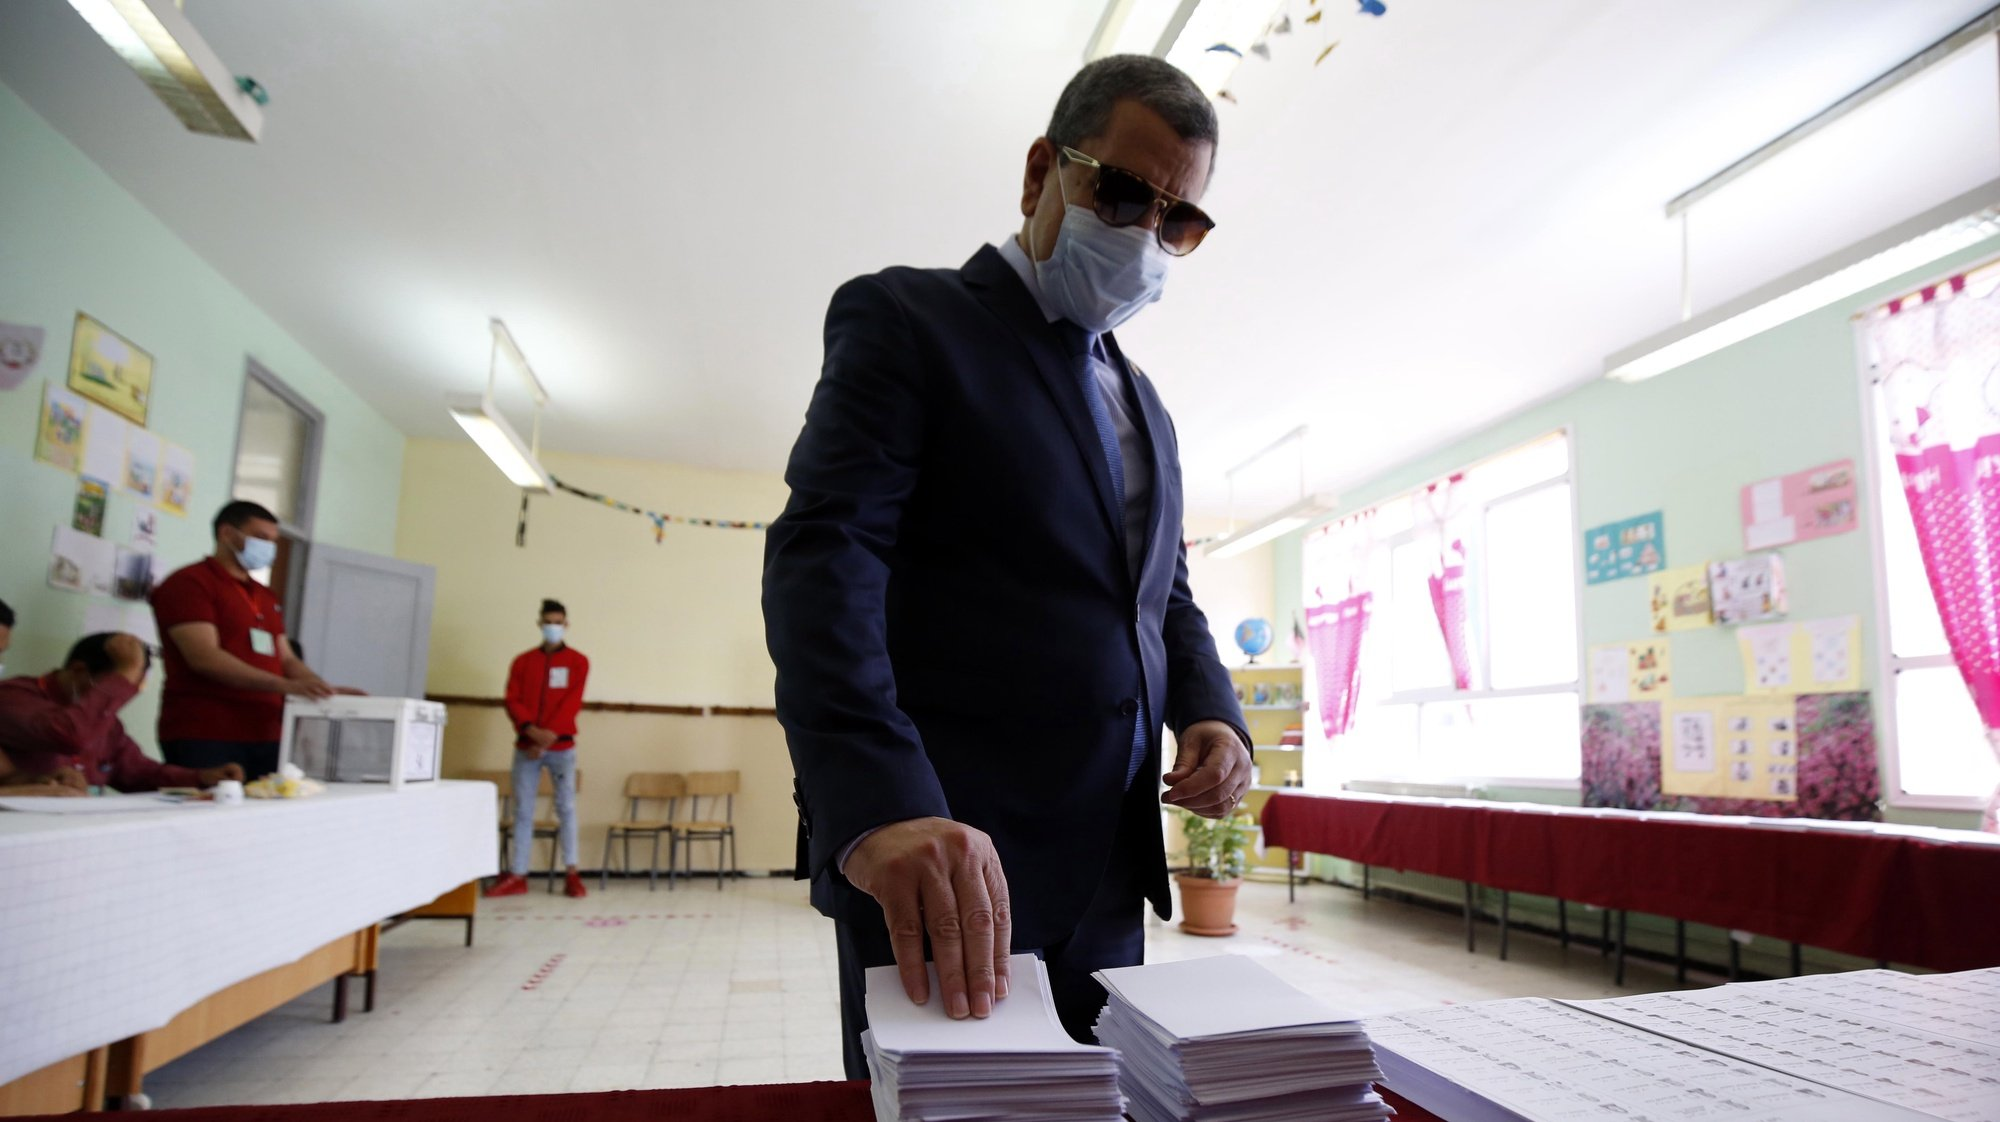 epaselect epa09264025 Algerian Prime Minister Abdelaziz Djerad picks up a ballot as he prepares to vote during parliamentary election at a polling station in Algiers, Algeria, 12 June 2021. Algeria is holding legislative elections of 2021 to elect 407 members of the lower house, the People's National Assembly (APN), for a five-year term. Initially expected for 2022, the elections are being held early in the context of a revision of the Constitution carried out by referendum in November 2020.  EPA/STRINGER